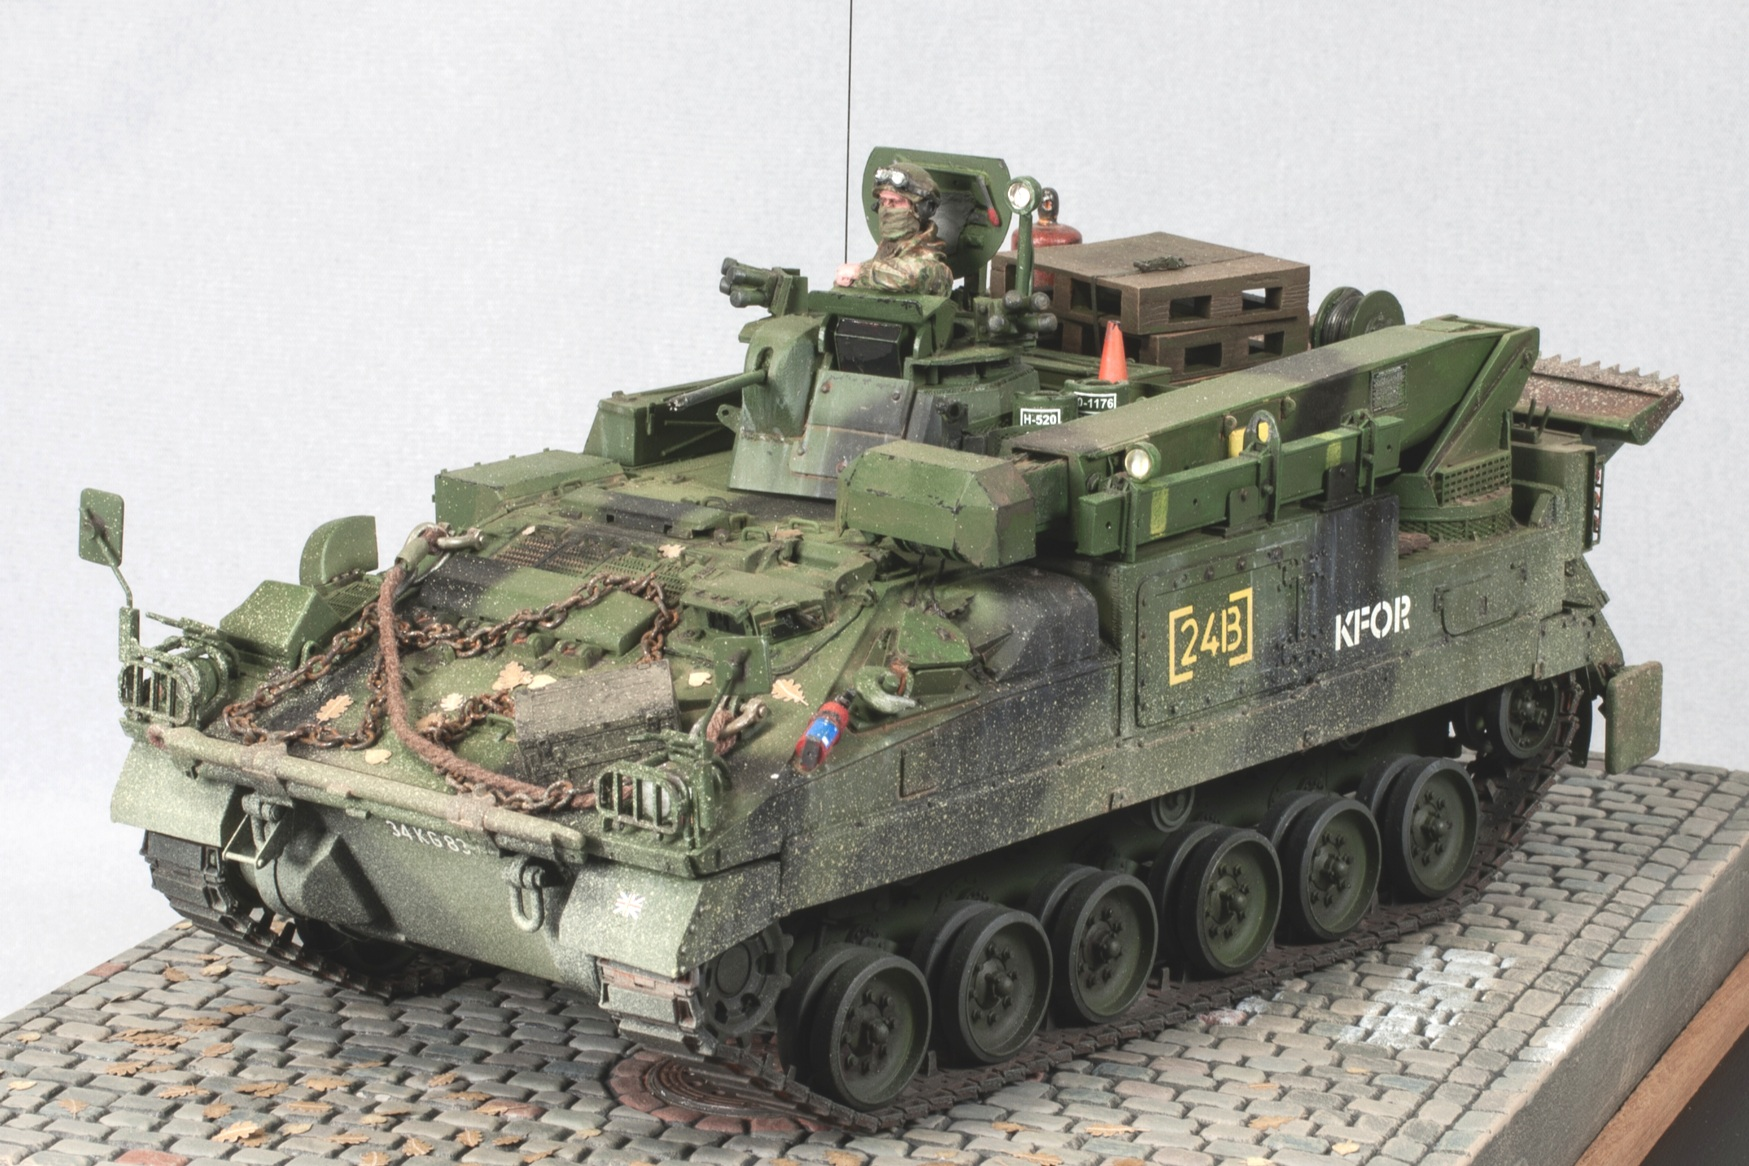 FV510 Warrior MRV(R) - Scale: 1/35Manufacturer: Accurate Armour